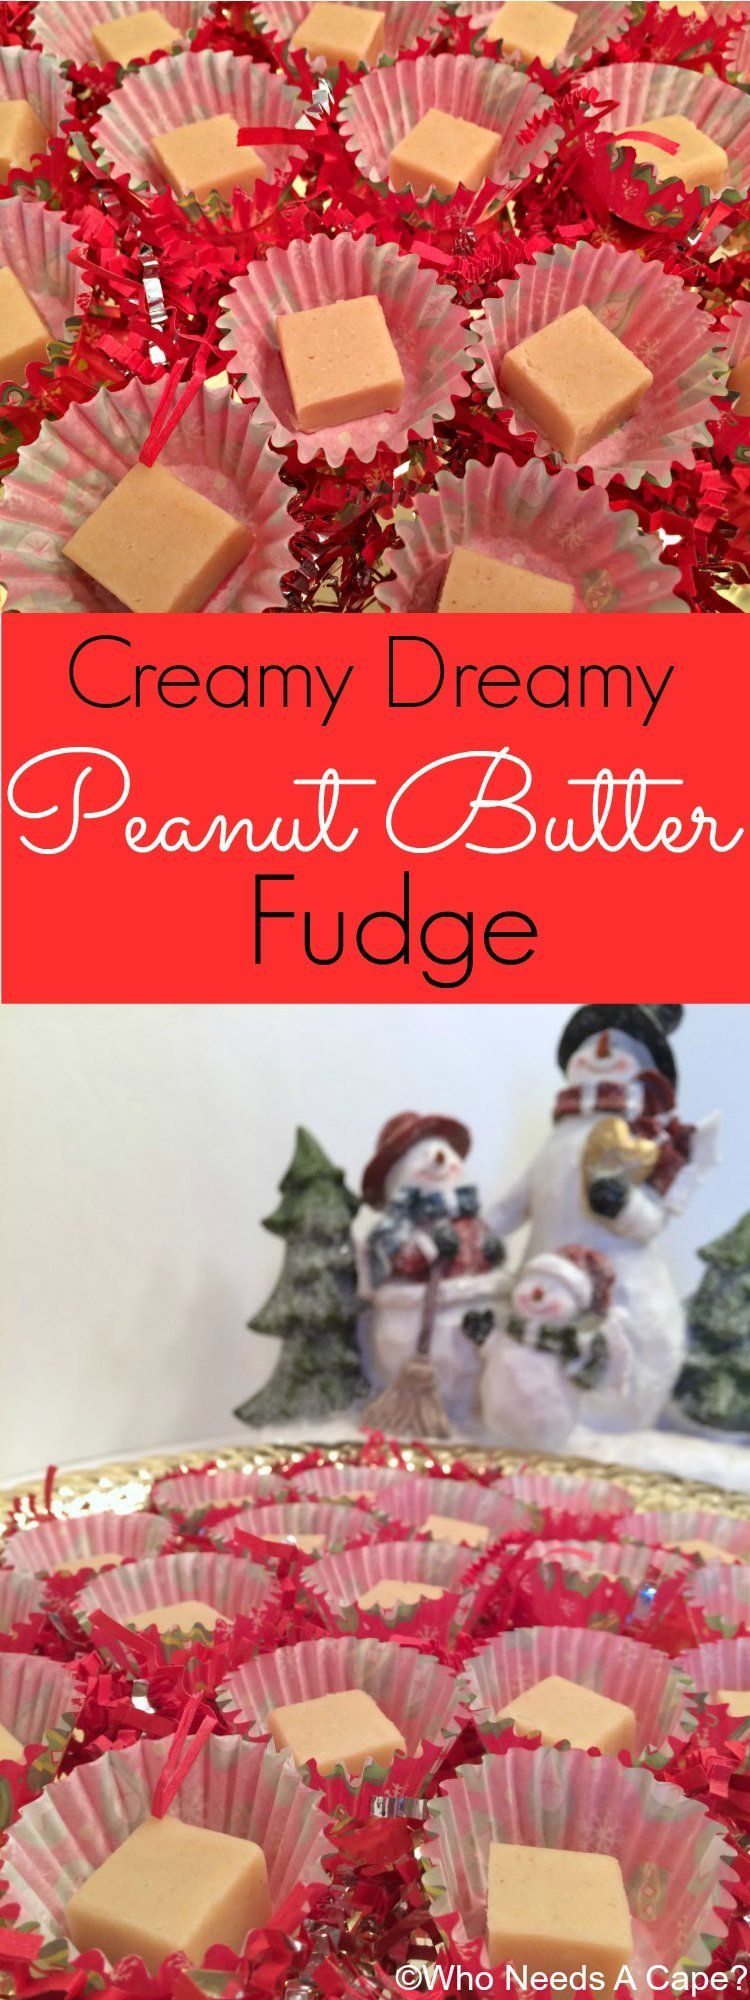 Creamy Dreamy Peanut Butter Fudge | Who Needs A Cape?